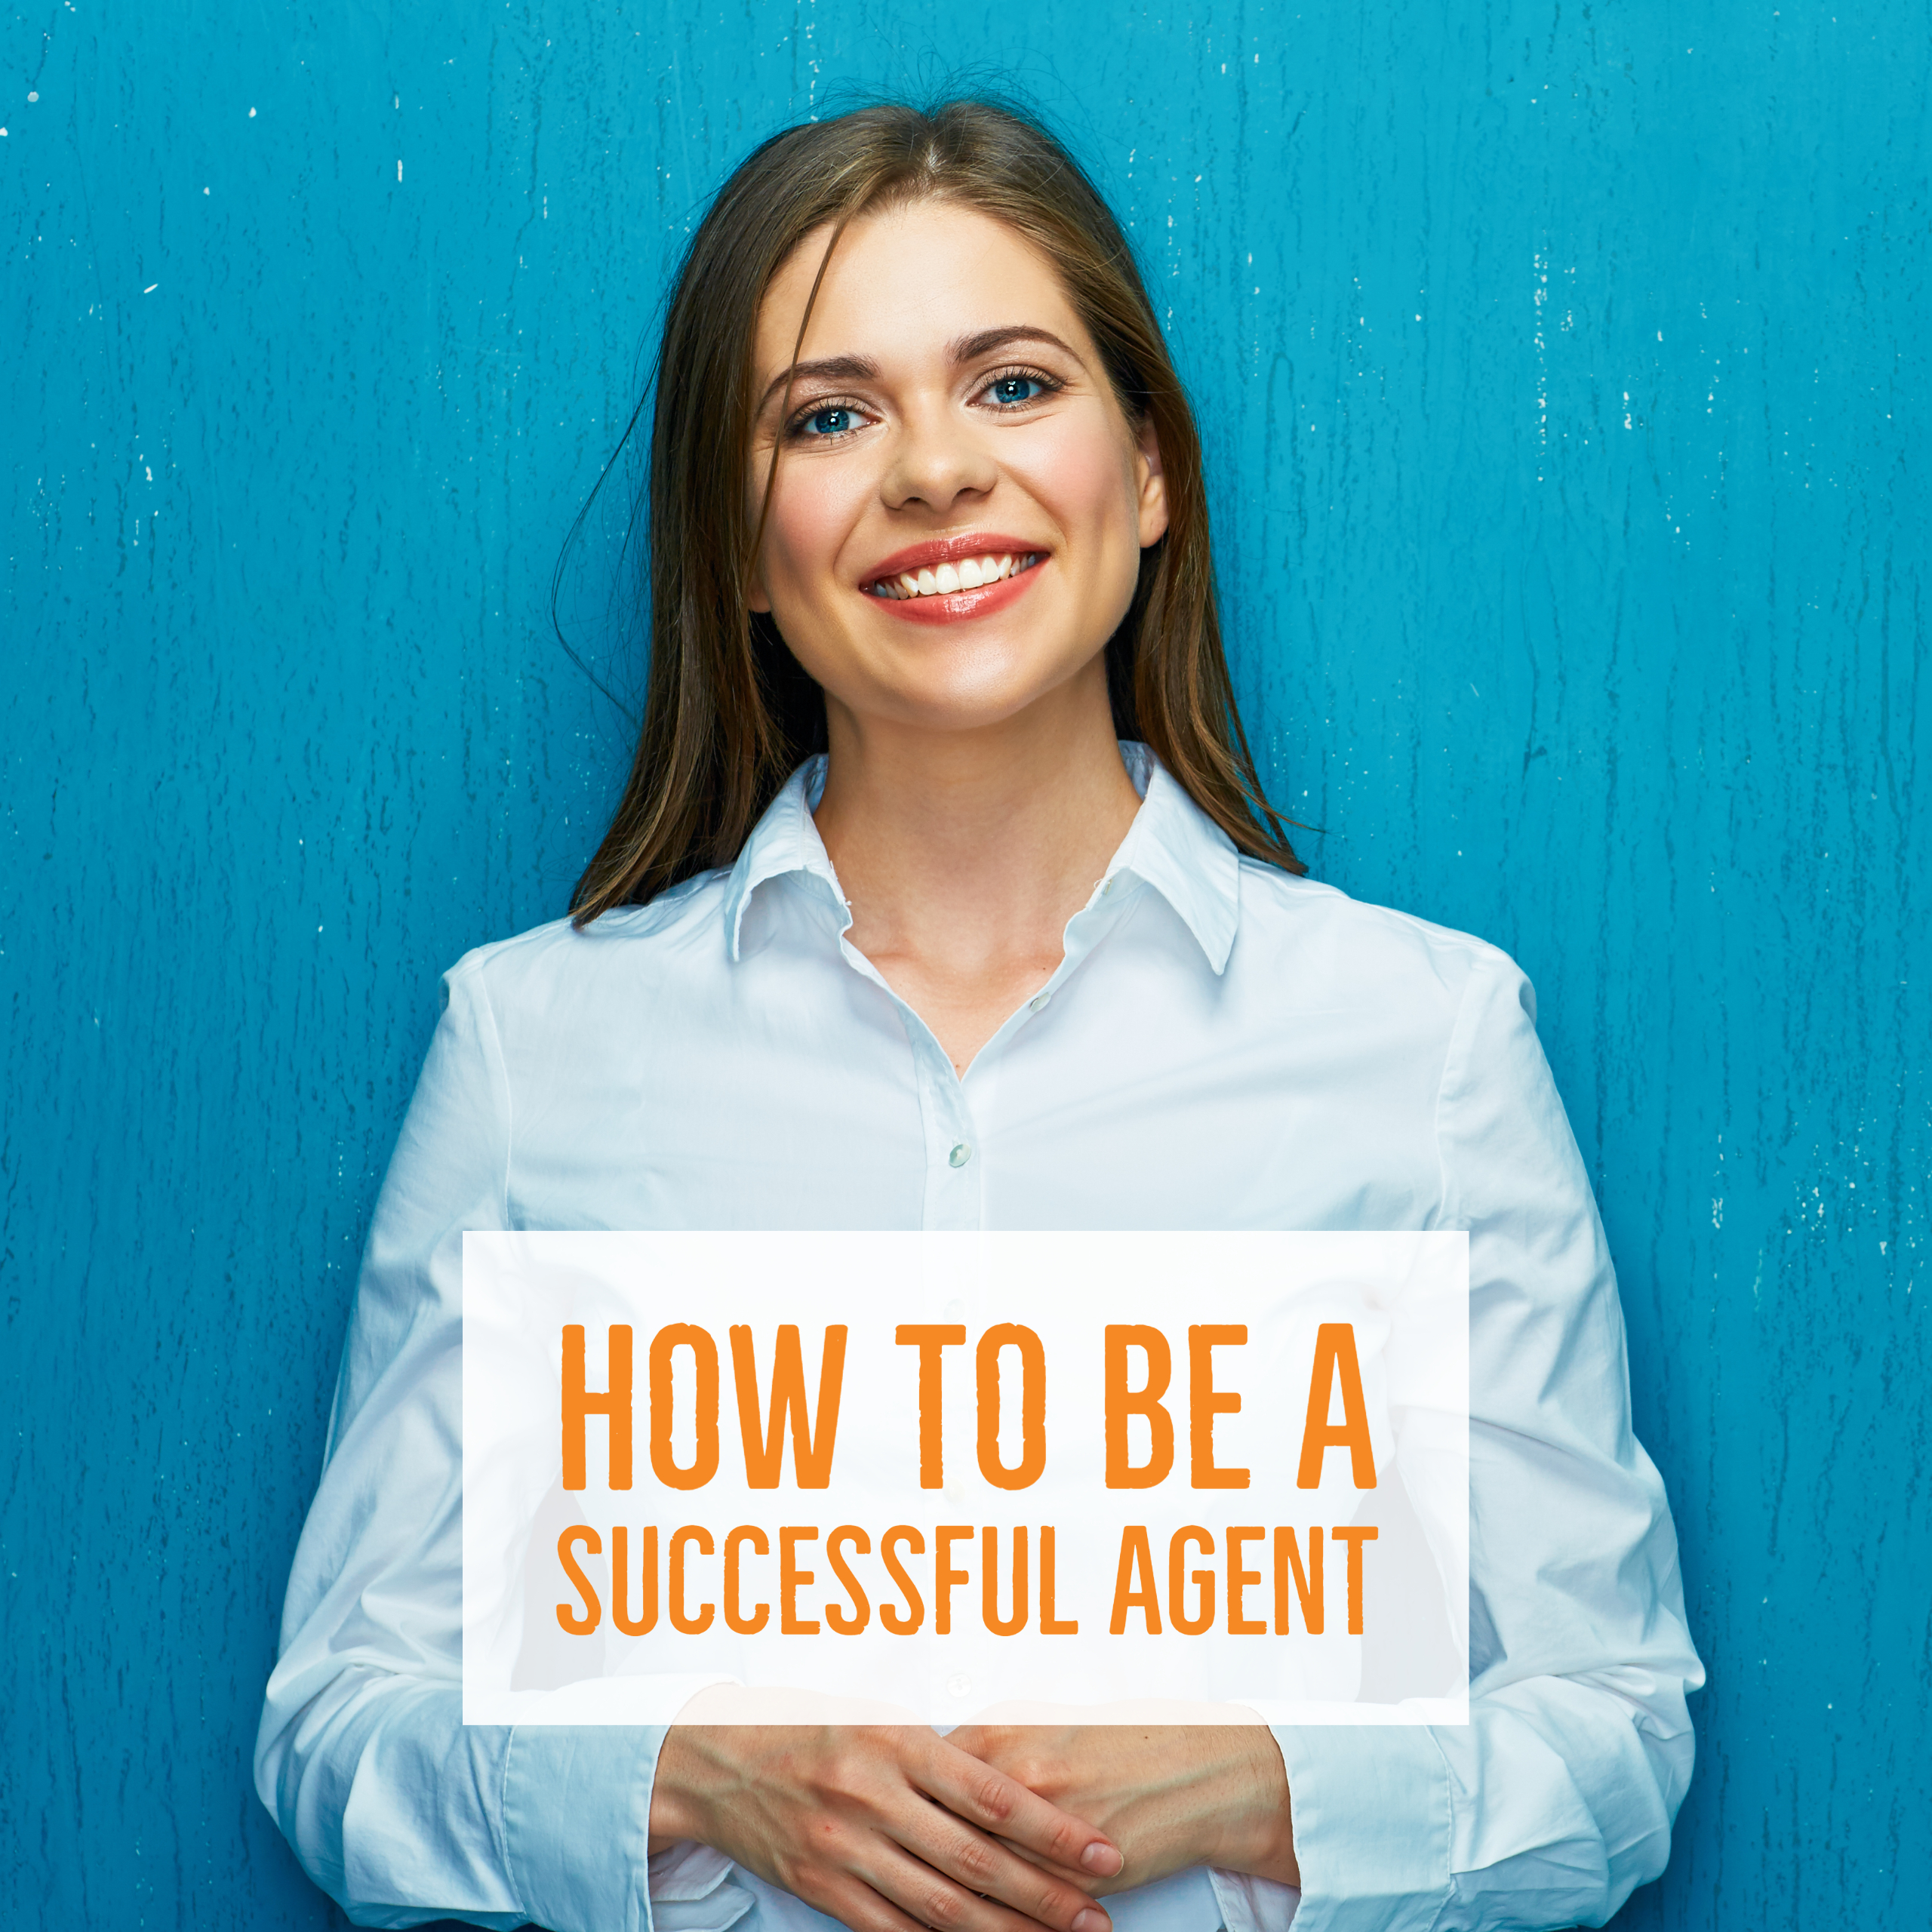 How to be a successful real estate agent course college of real estate 2